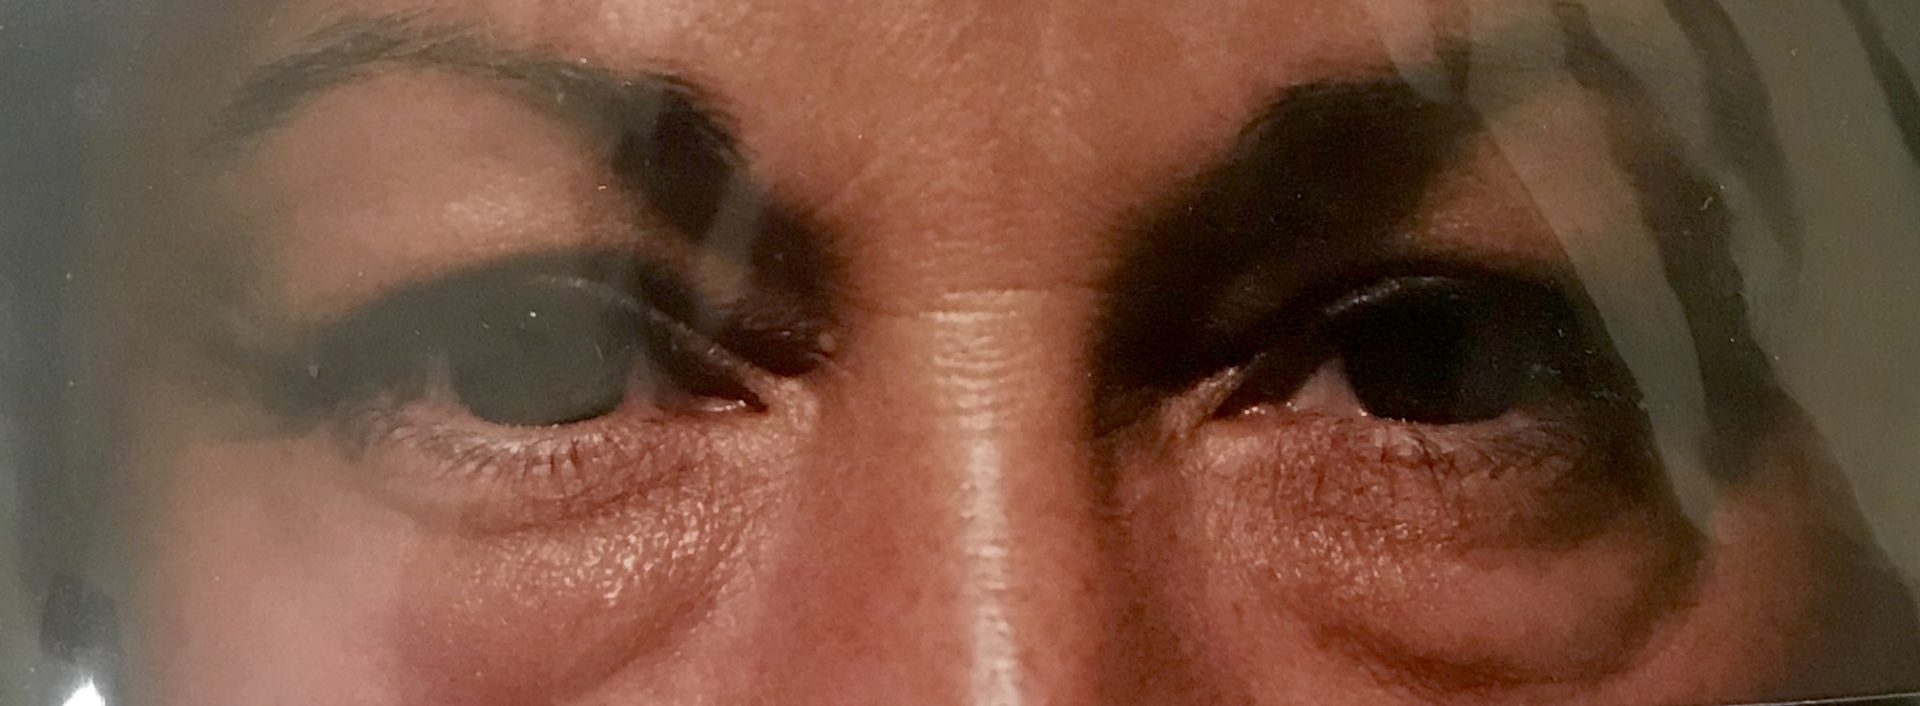 Under eye lift (Blepharoplasty) Patient1 Set1 Before Page